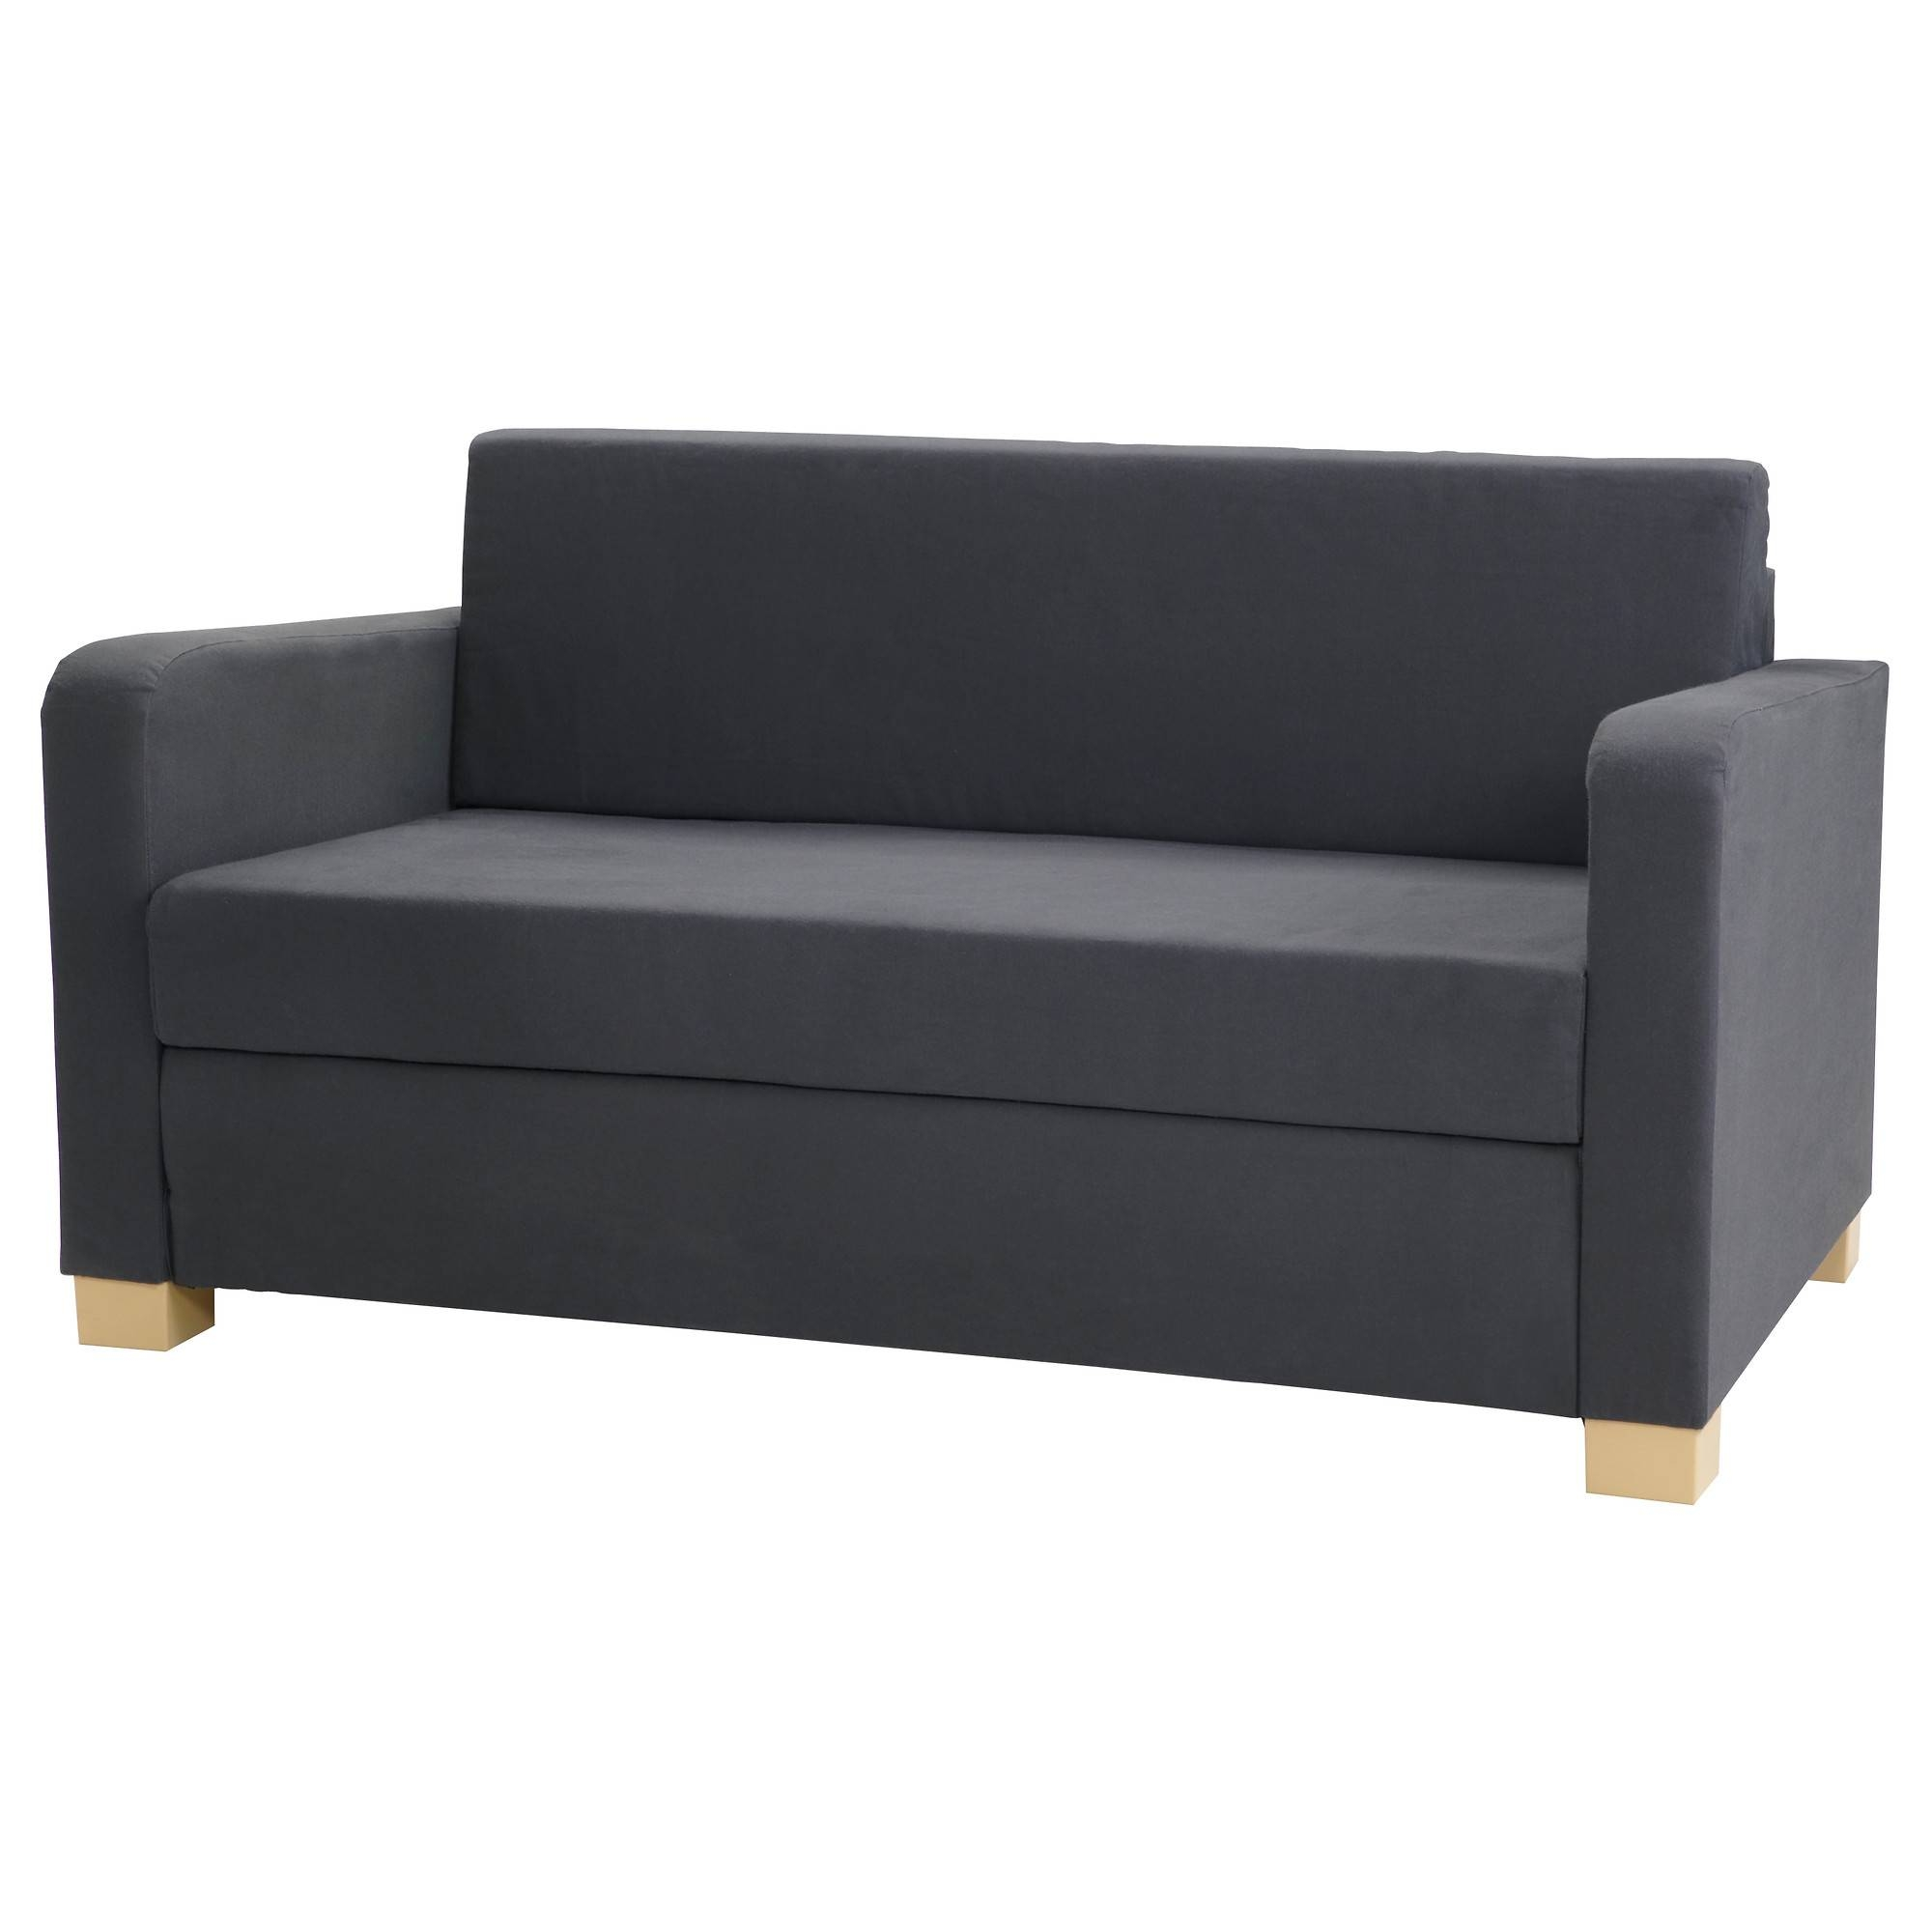 Sleeper-Sofas & Chair Beds - Ikea within Manstad Sofa Bed With Storage From Ikea (Image 20 of 25)